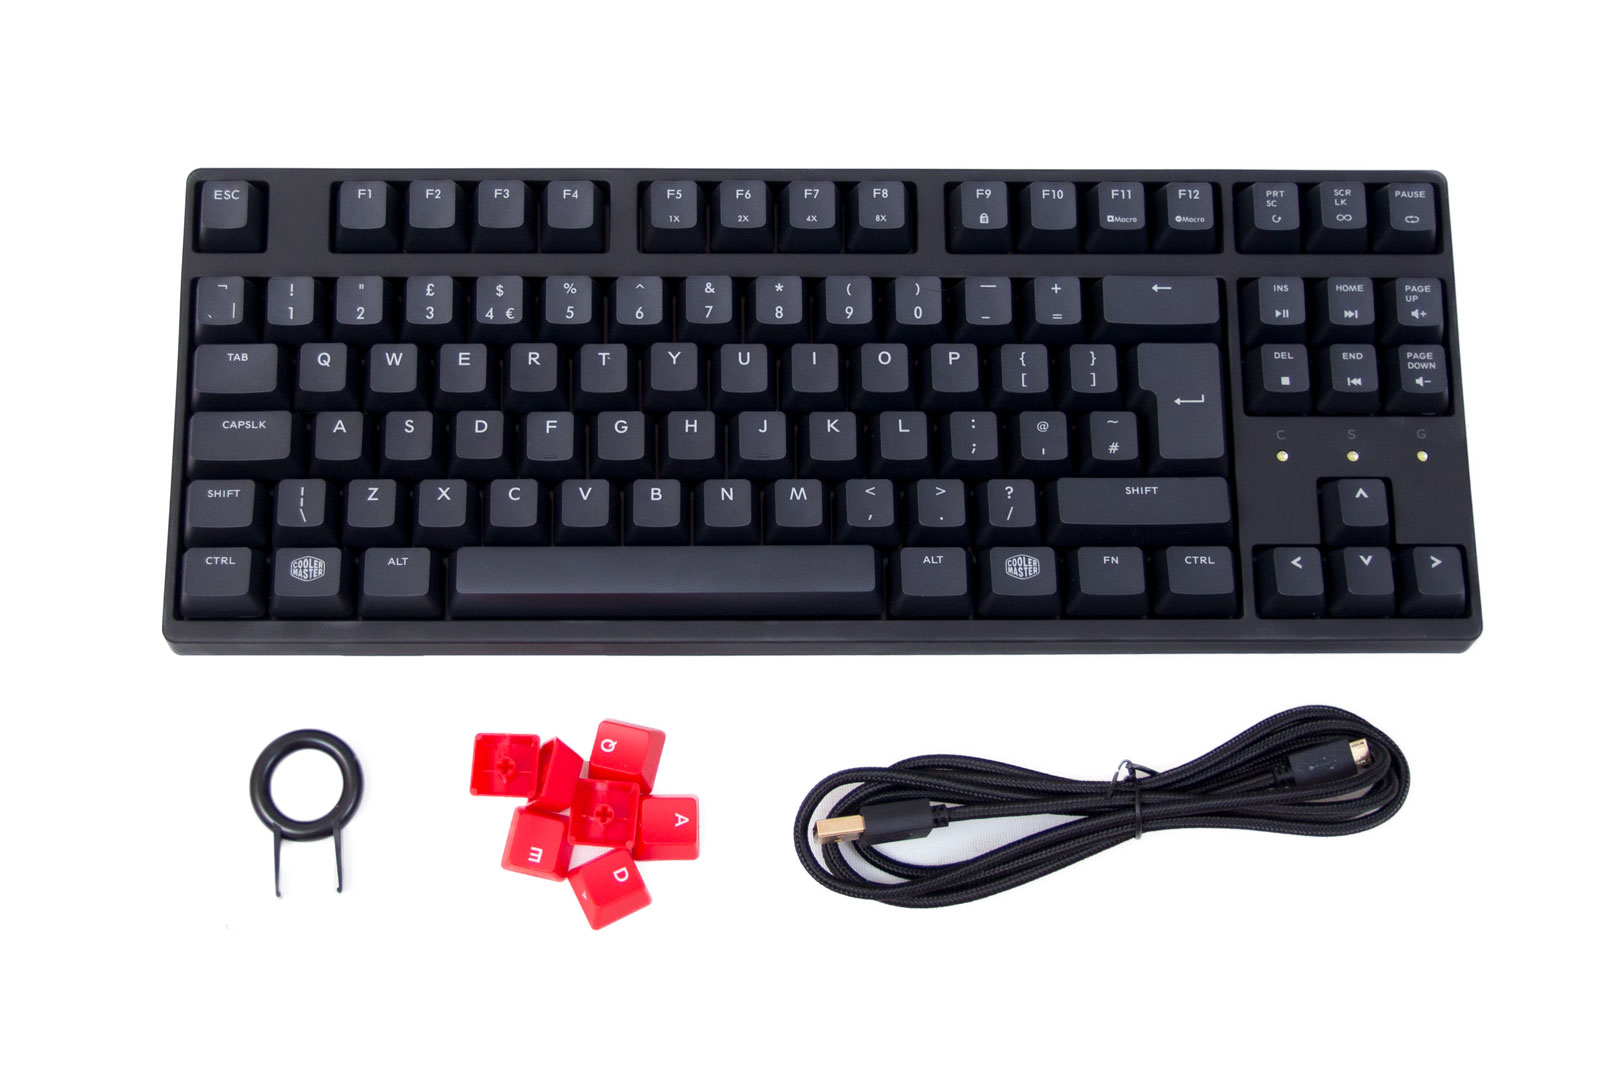 Cooler Master MasterKeys L S PBT Keyboard Review  59831e47dfcbc